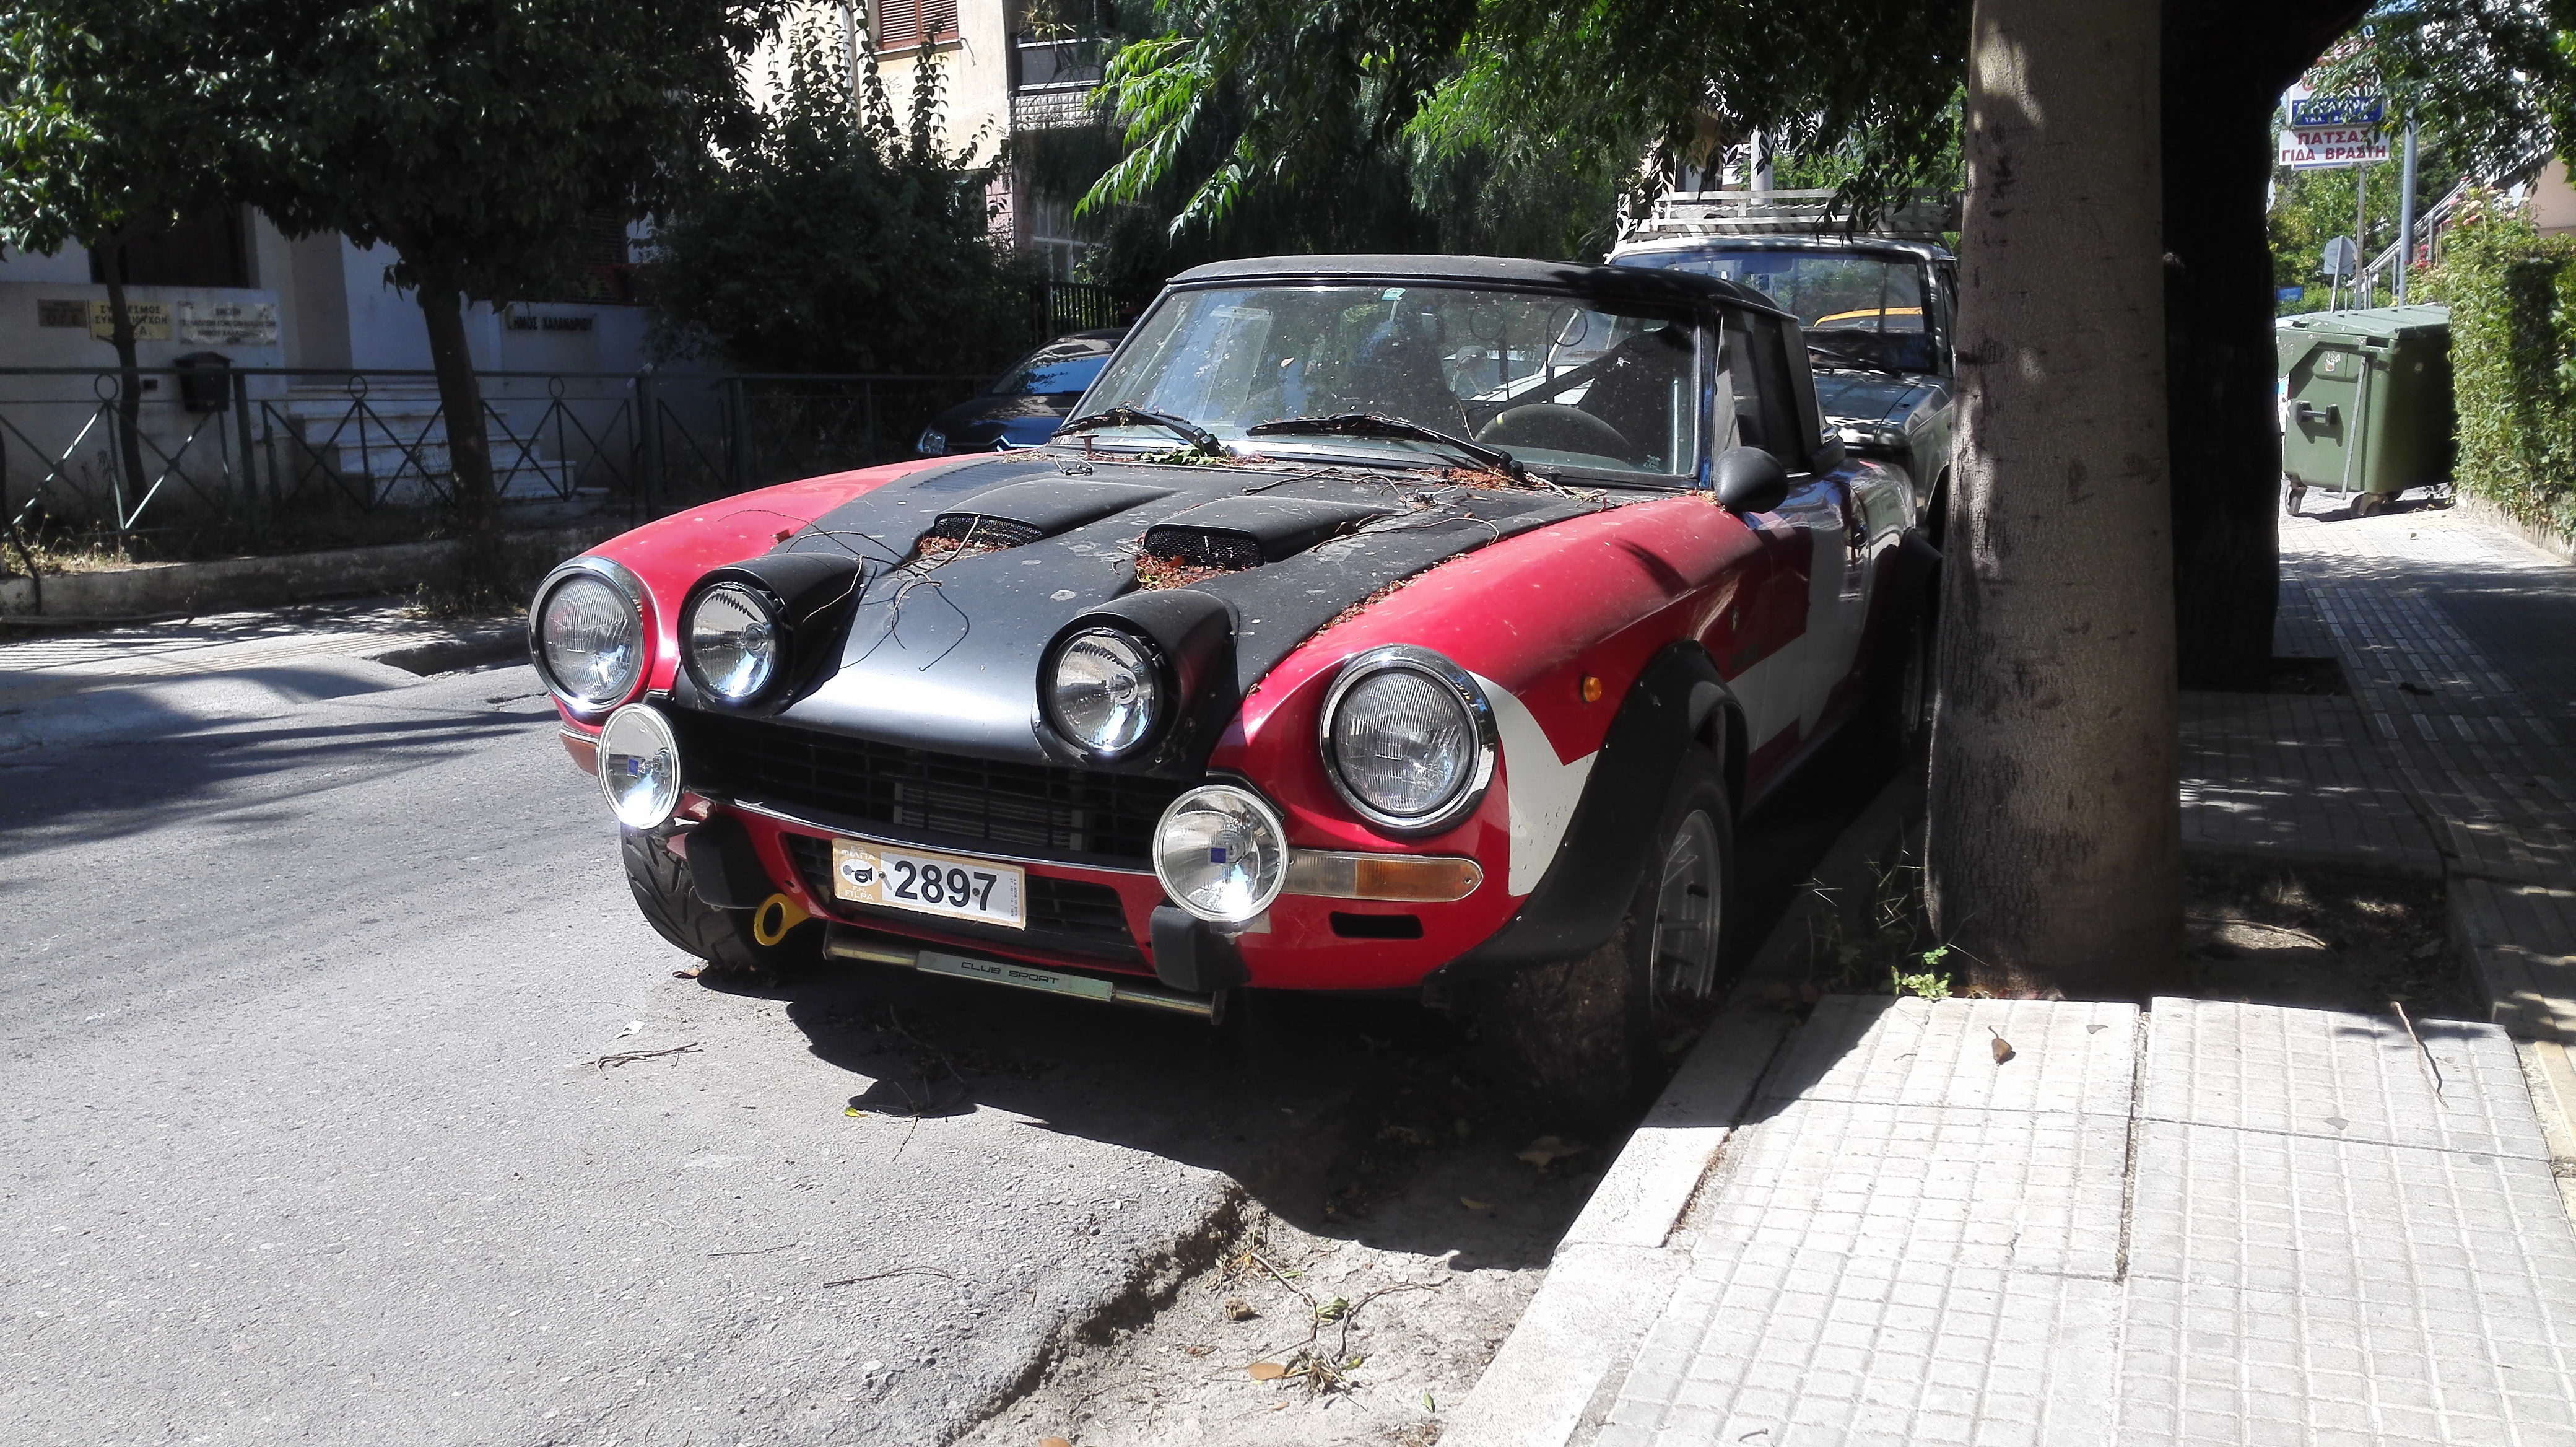 Fiat 124 Spider Abarth Rally Car In The Wild